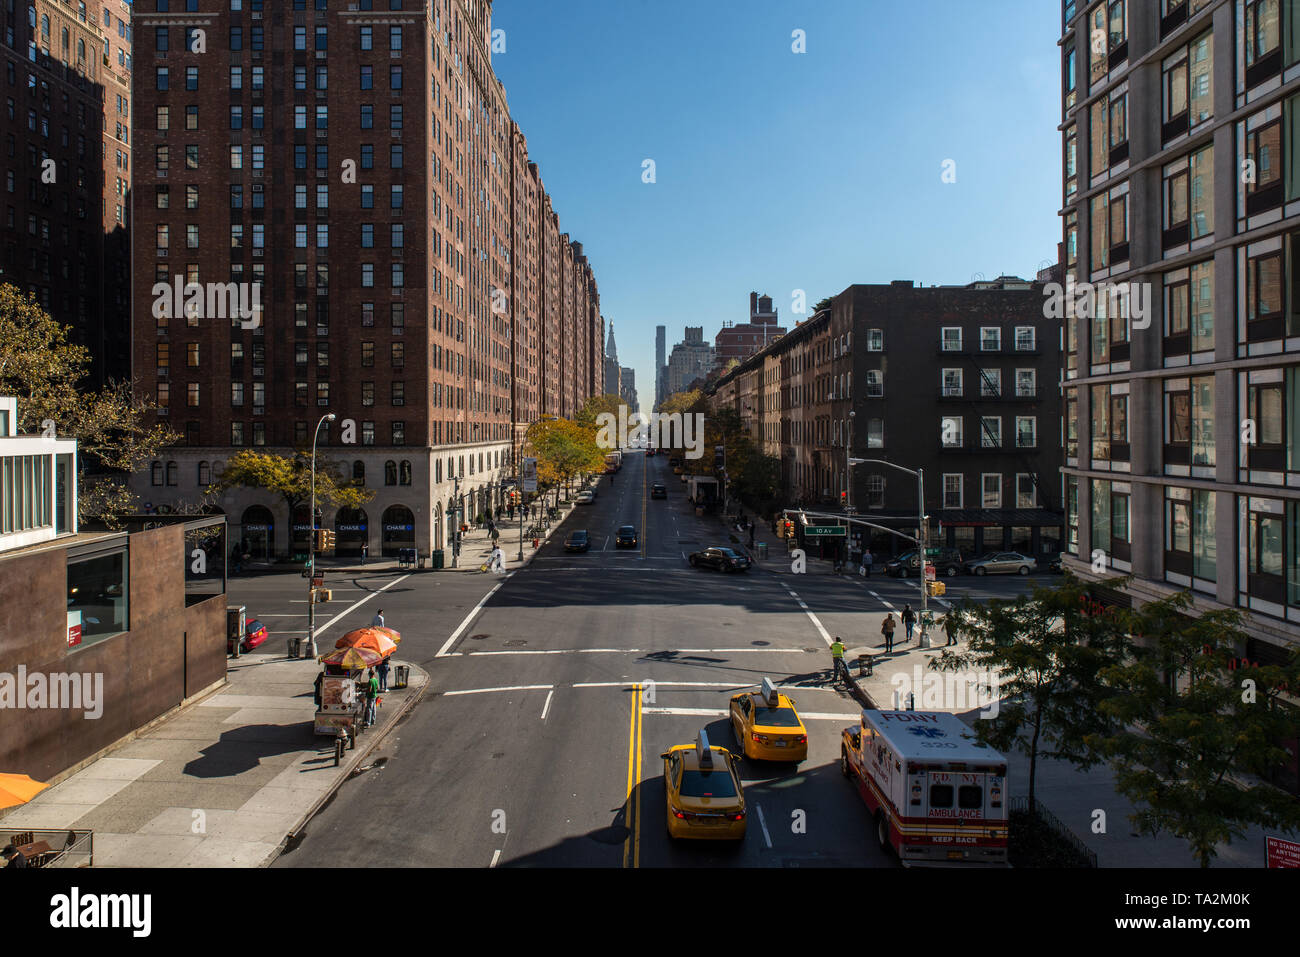 New York City at 23rd street and 10th avenue from the High Line, USA. Stock Photo